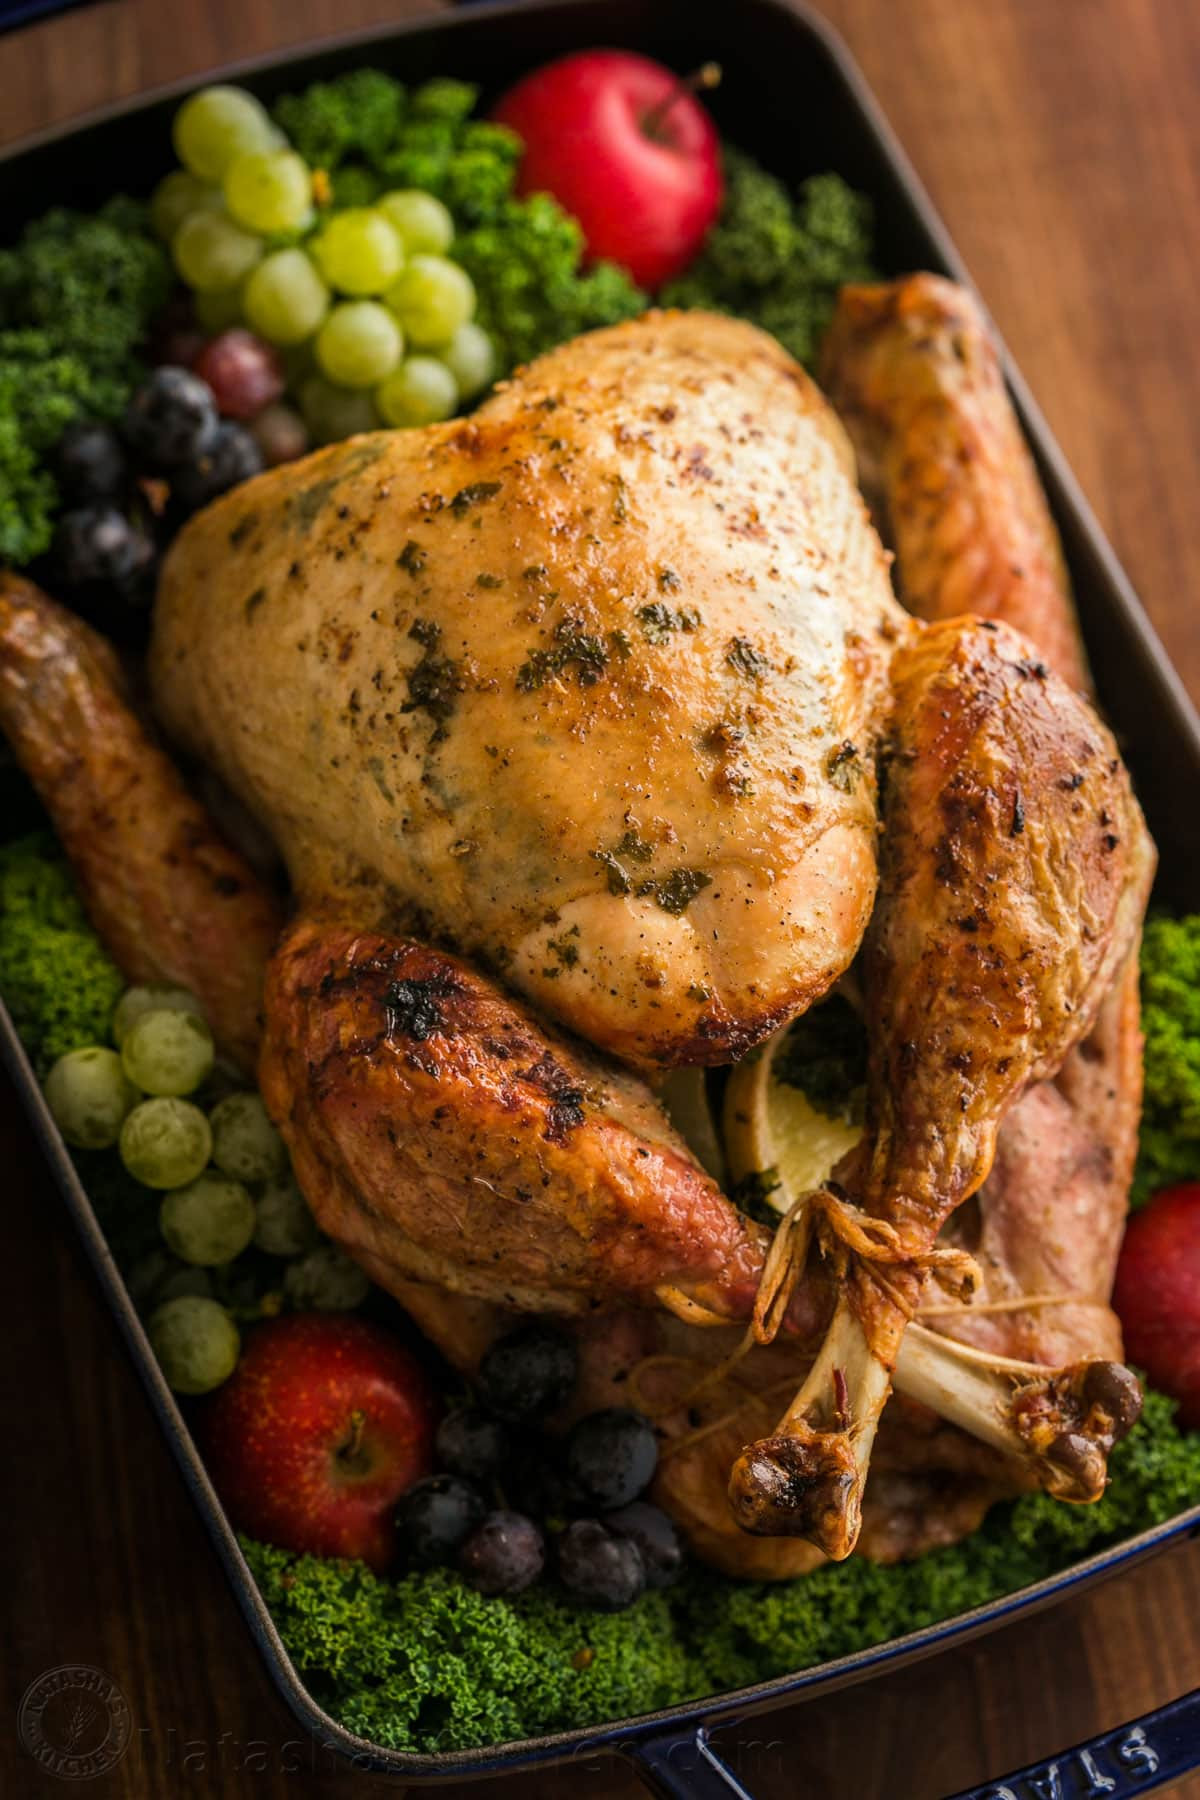 Juicy Thanksgiving Turkey Recipe  Thanksgiving Turkey Recipe VIDEO NatashasKitchen